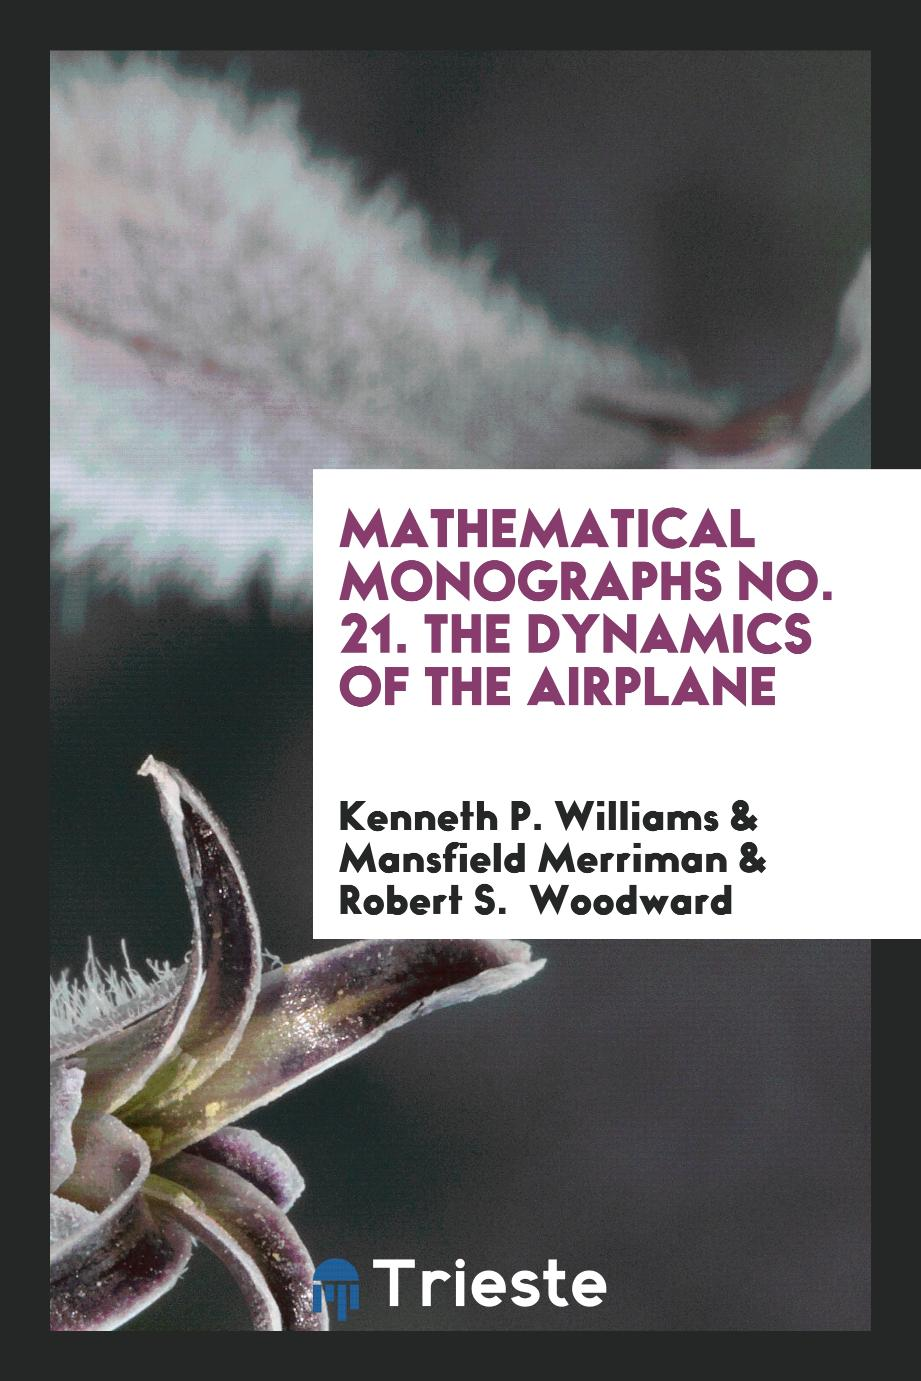 Mathematical Monographs No. 21. The Dynamics of the Airplane